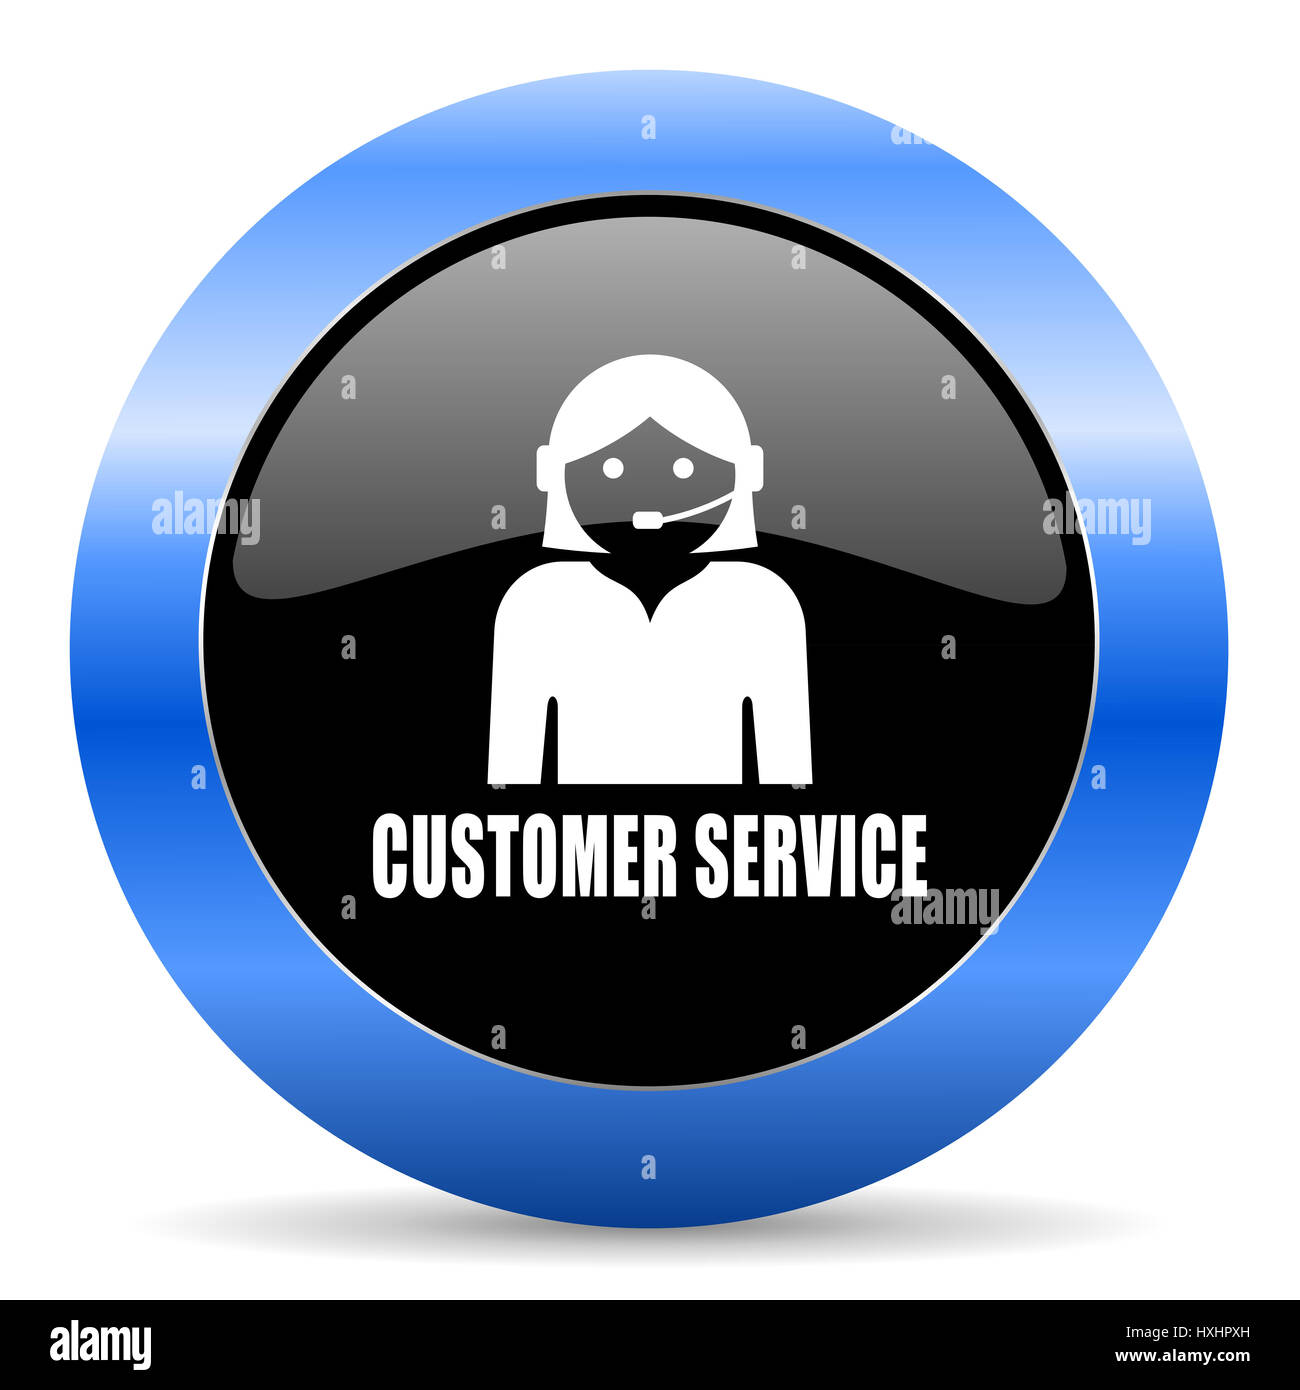 Customer service black and blue web design round internet